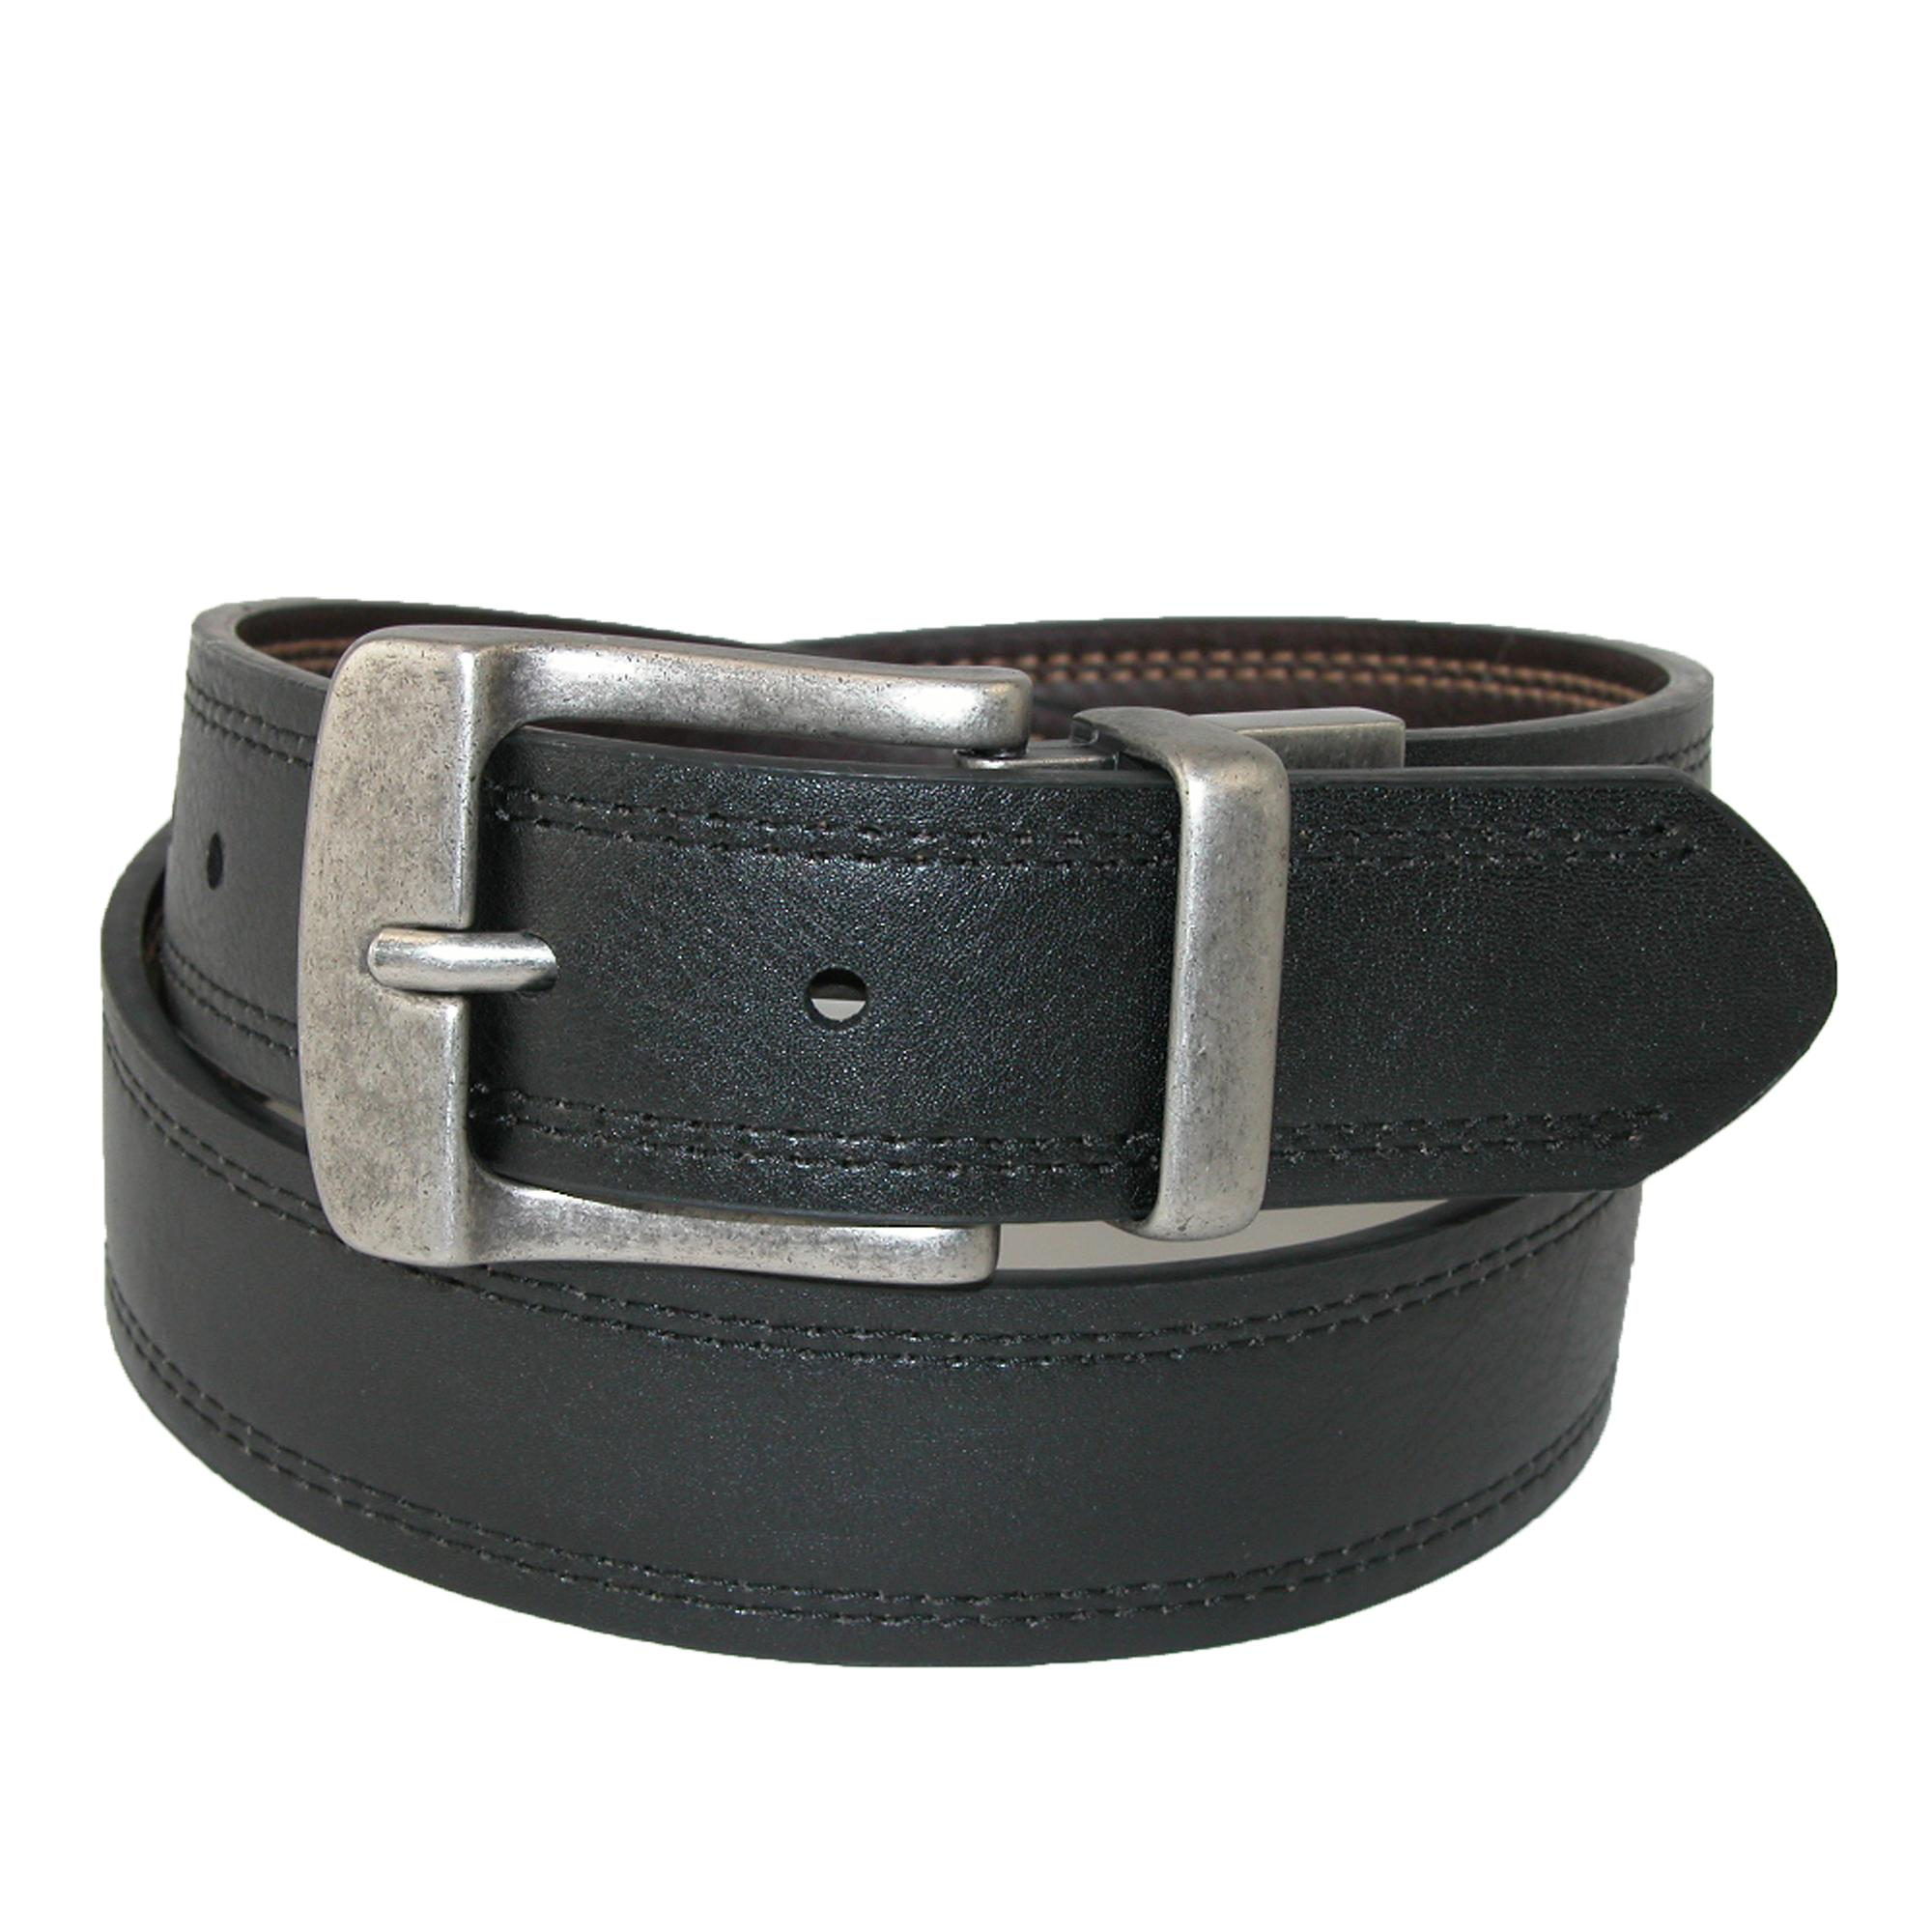 Levis Men's Big & Tall Leather Reversible Belt With Double Row Stitch